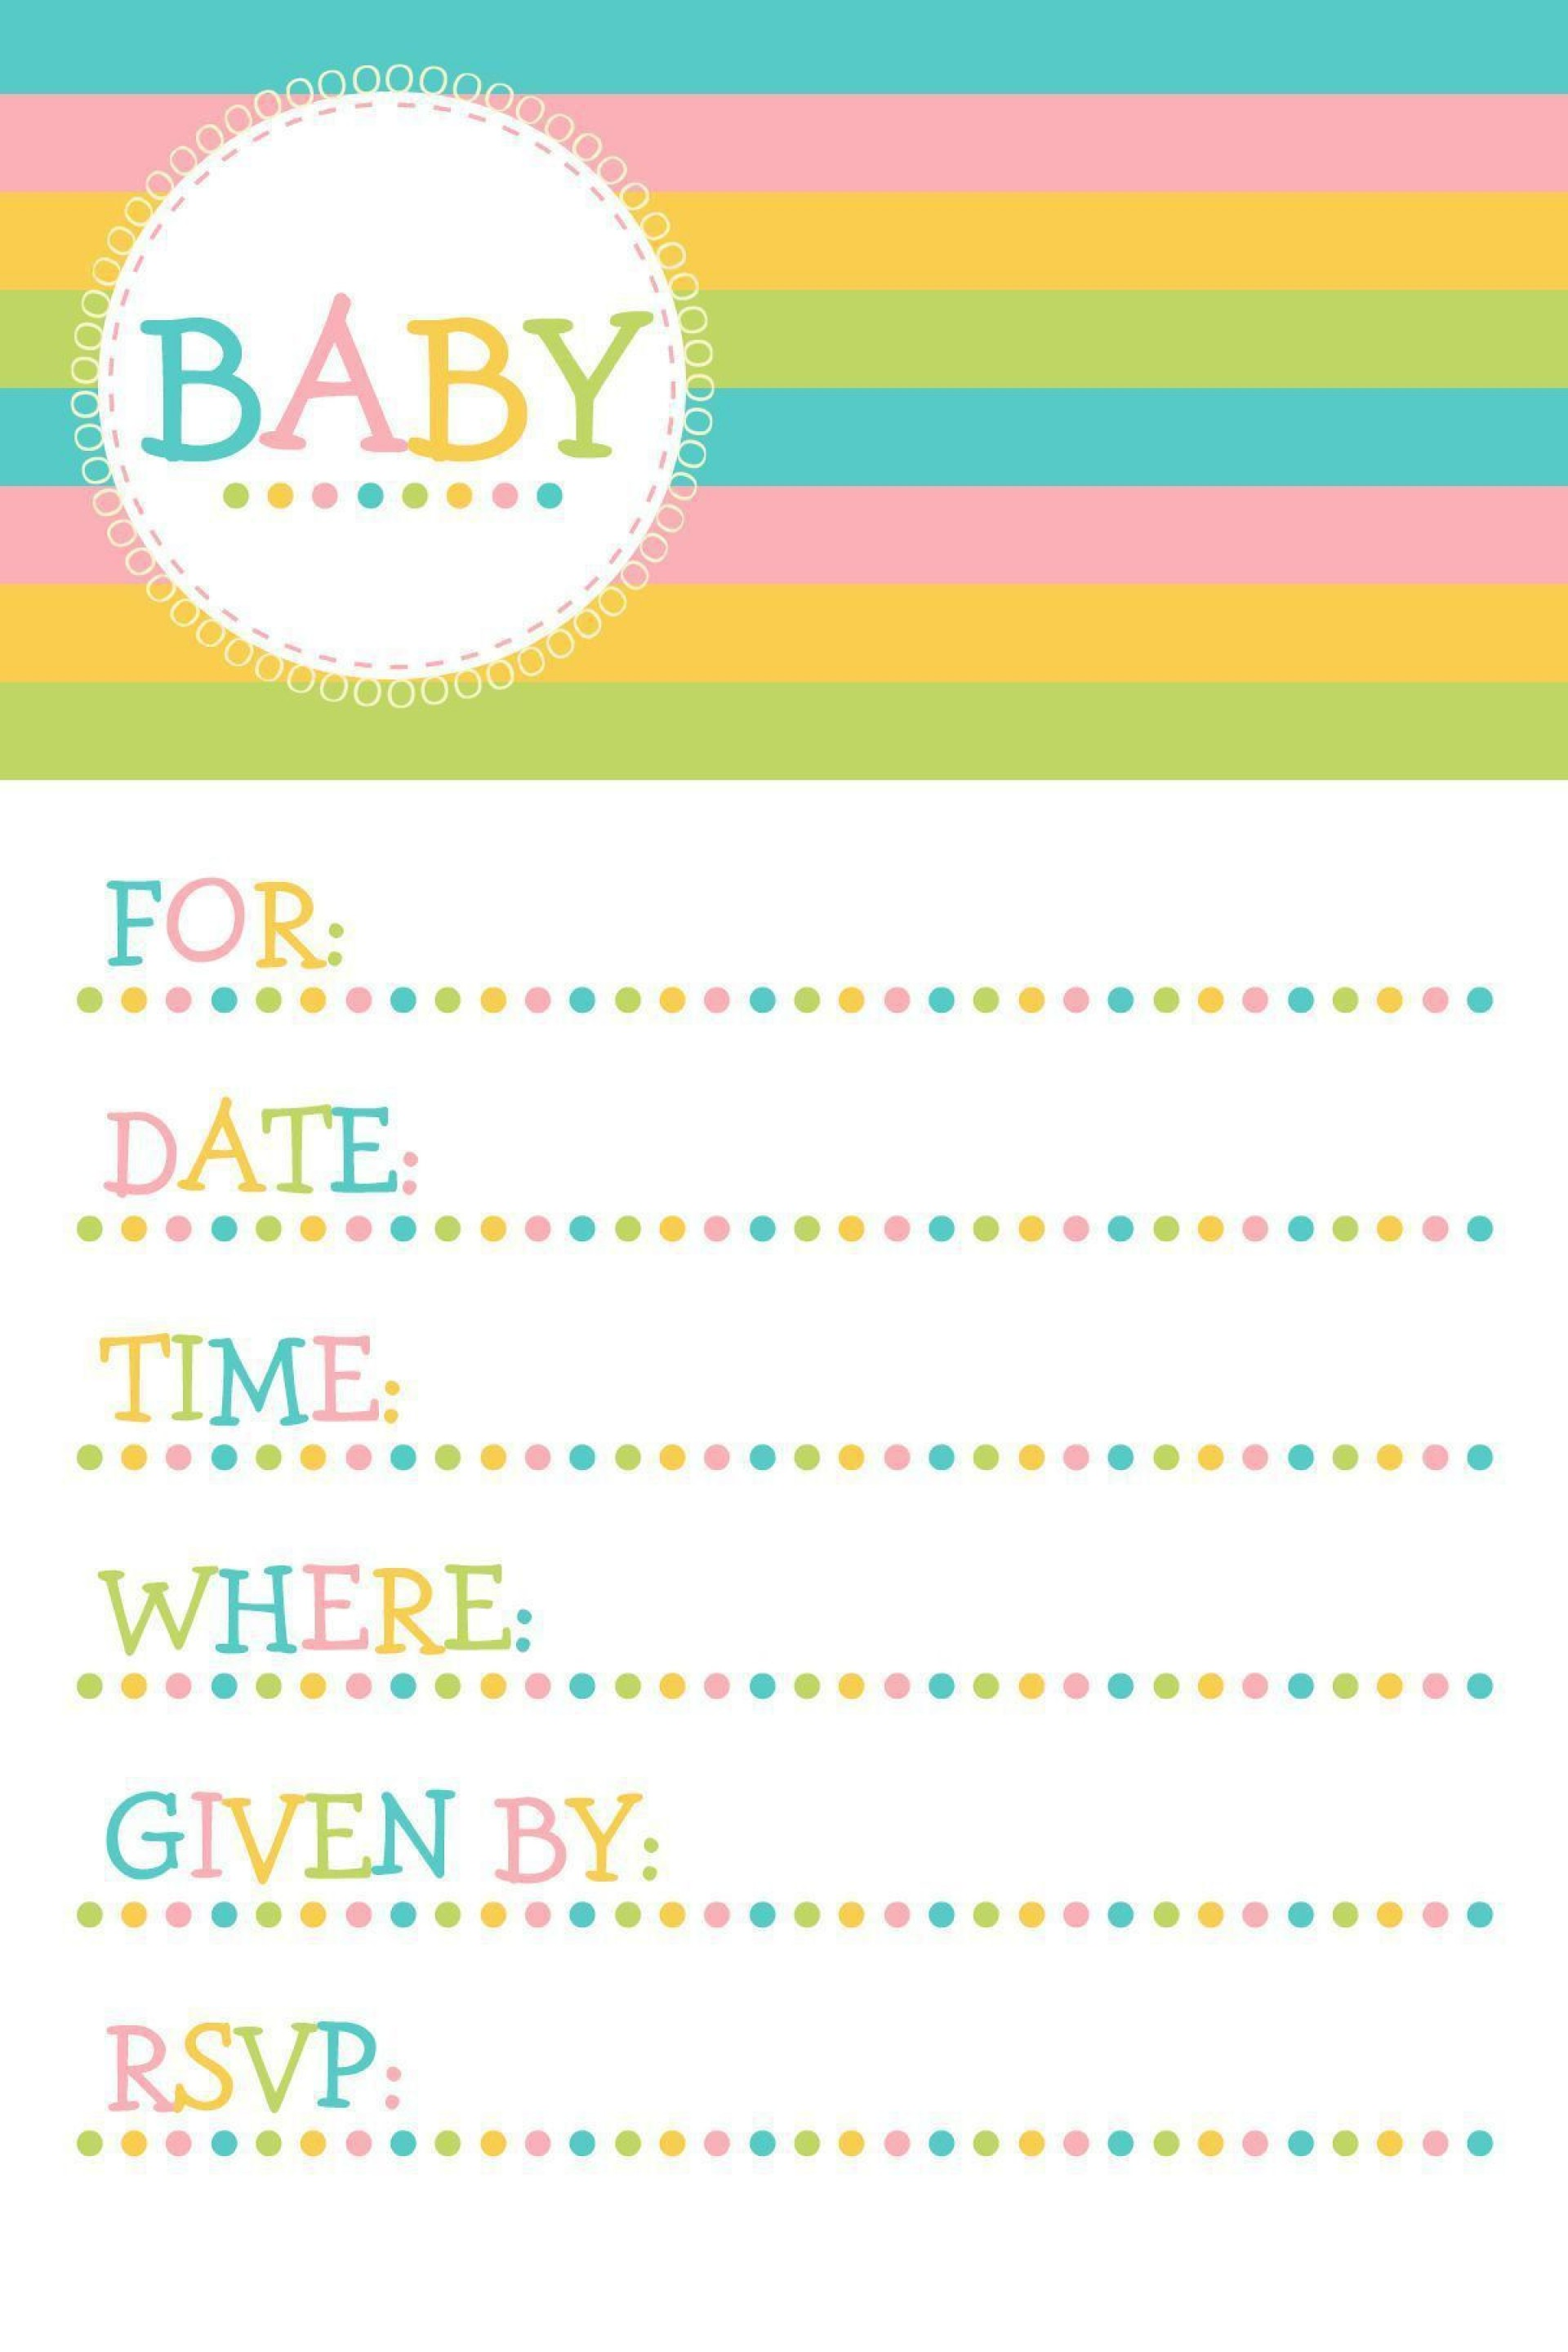 004 Magnificent Baby Shower Invitation Template Microsoft Word Photo  Free Editable1920